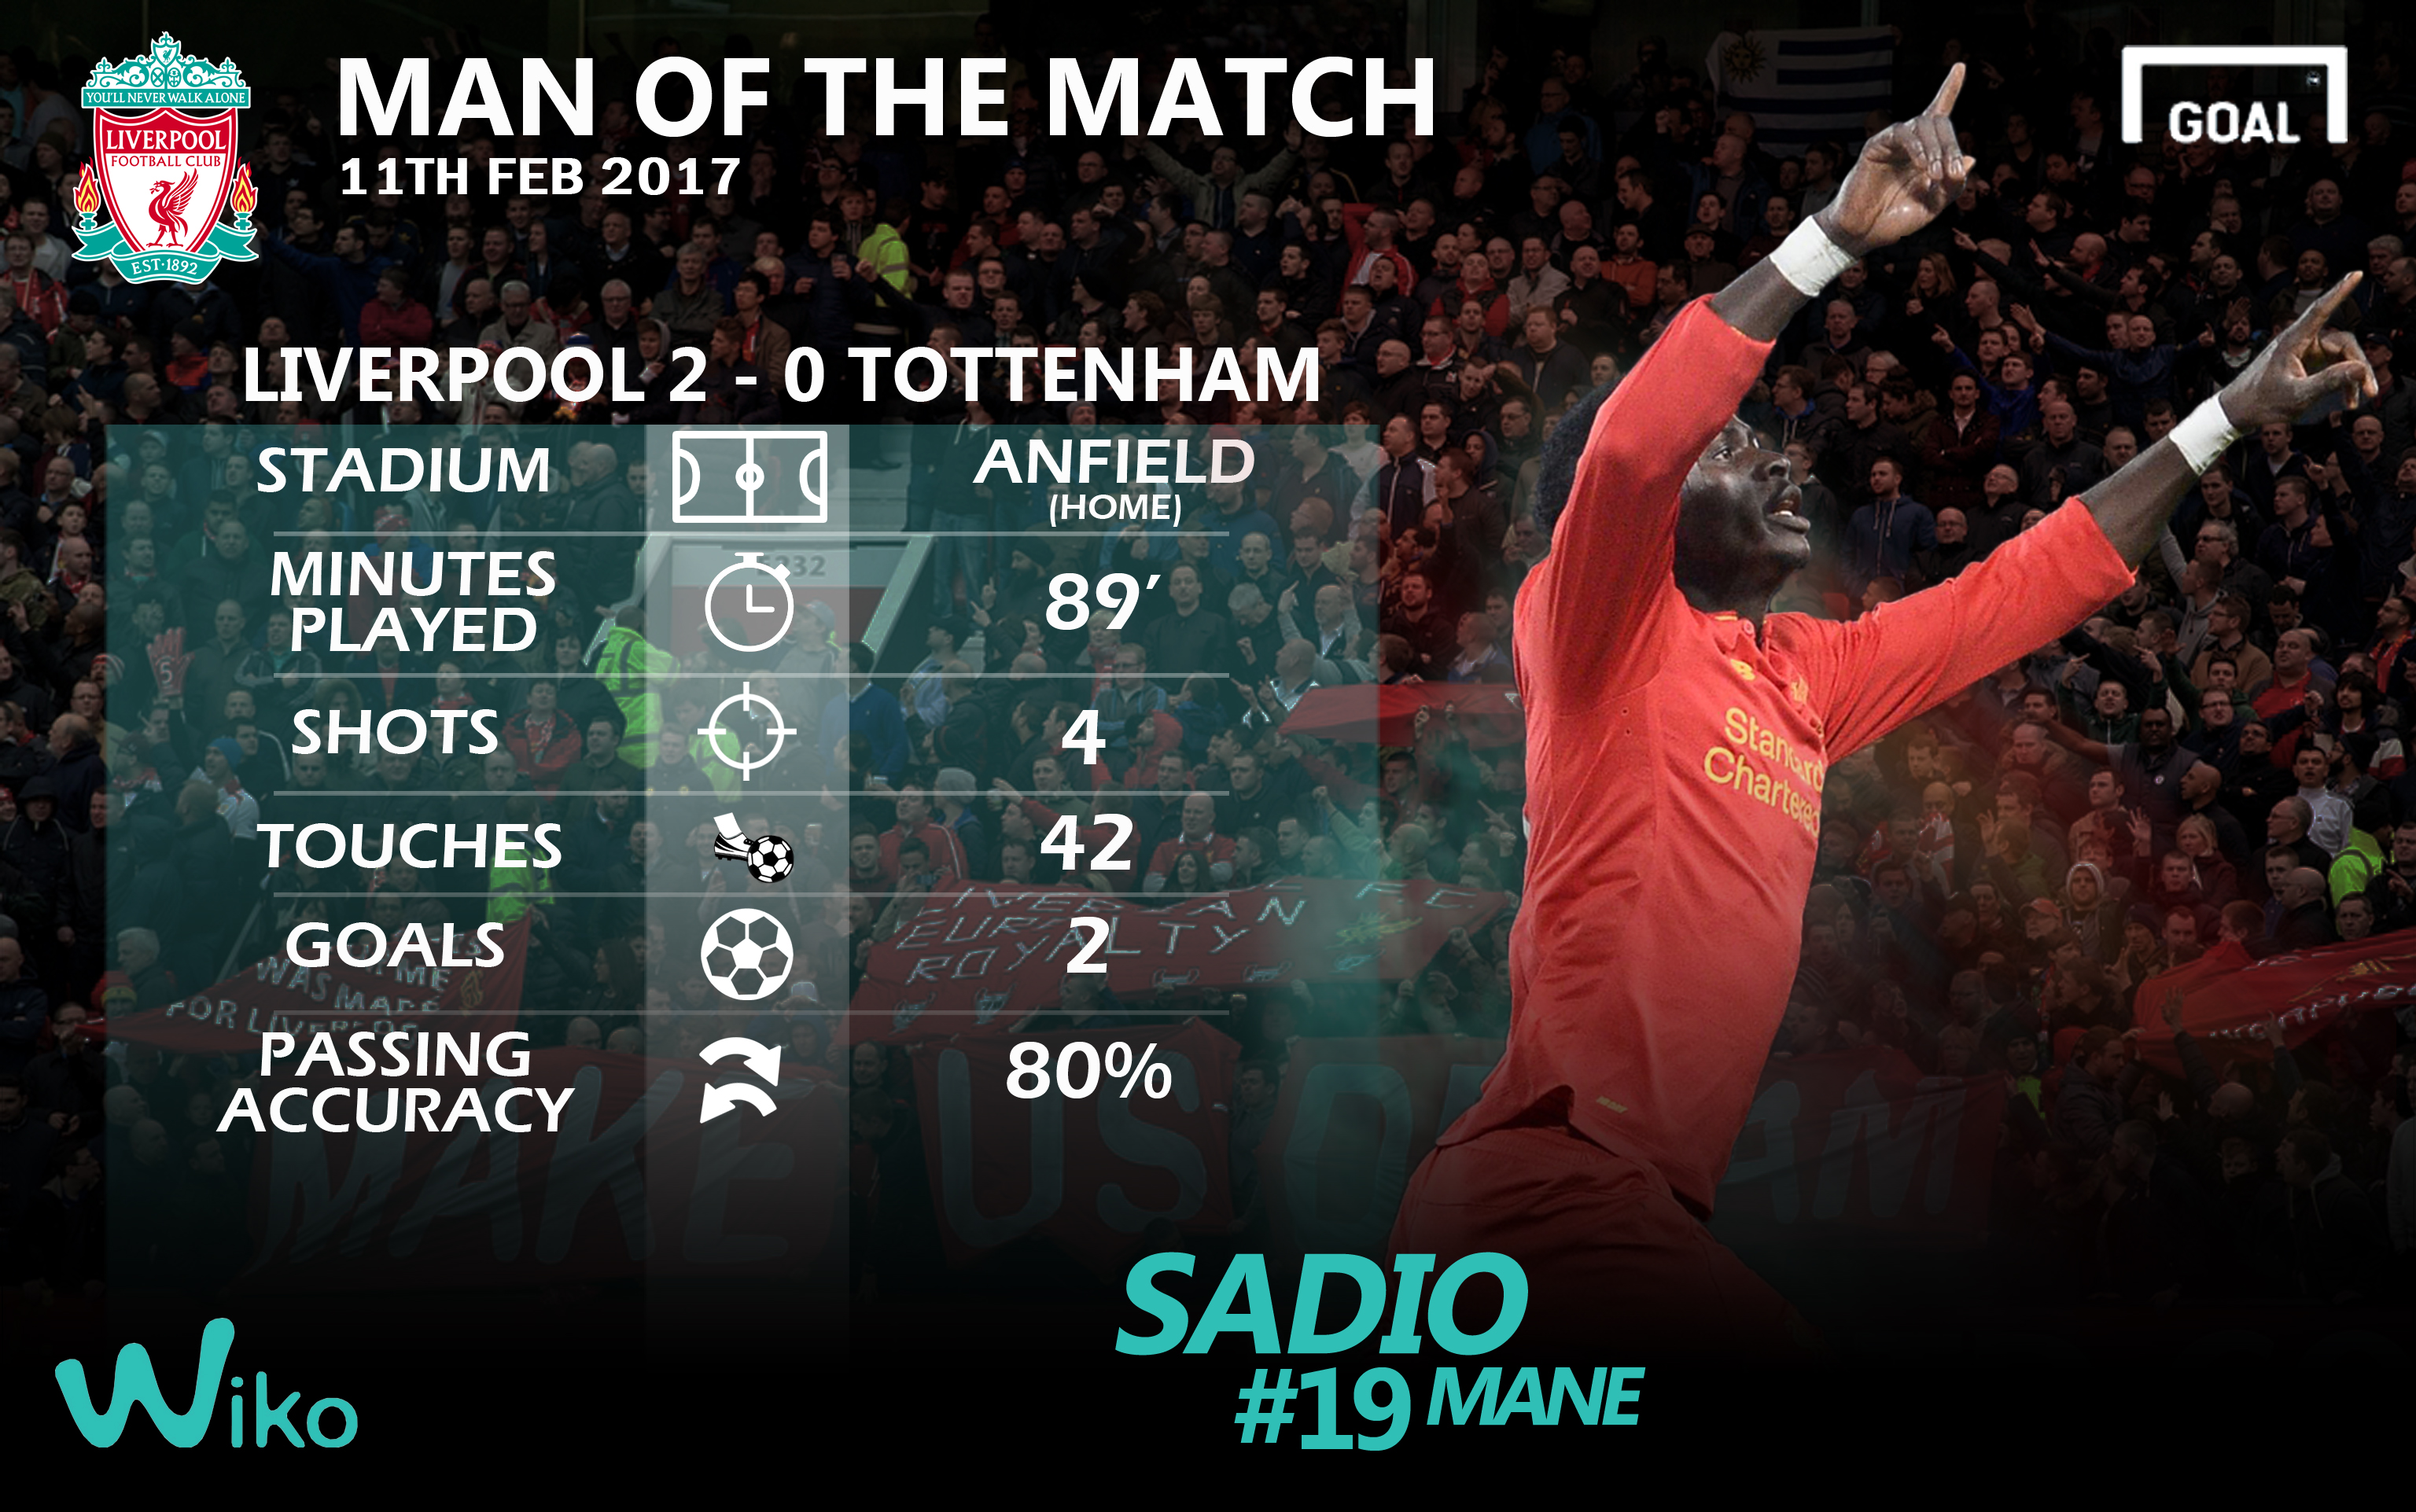 WIKO Game Changer Sadio Mane - vs Tottenham